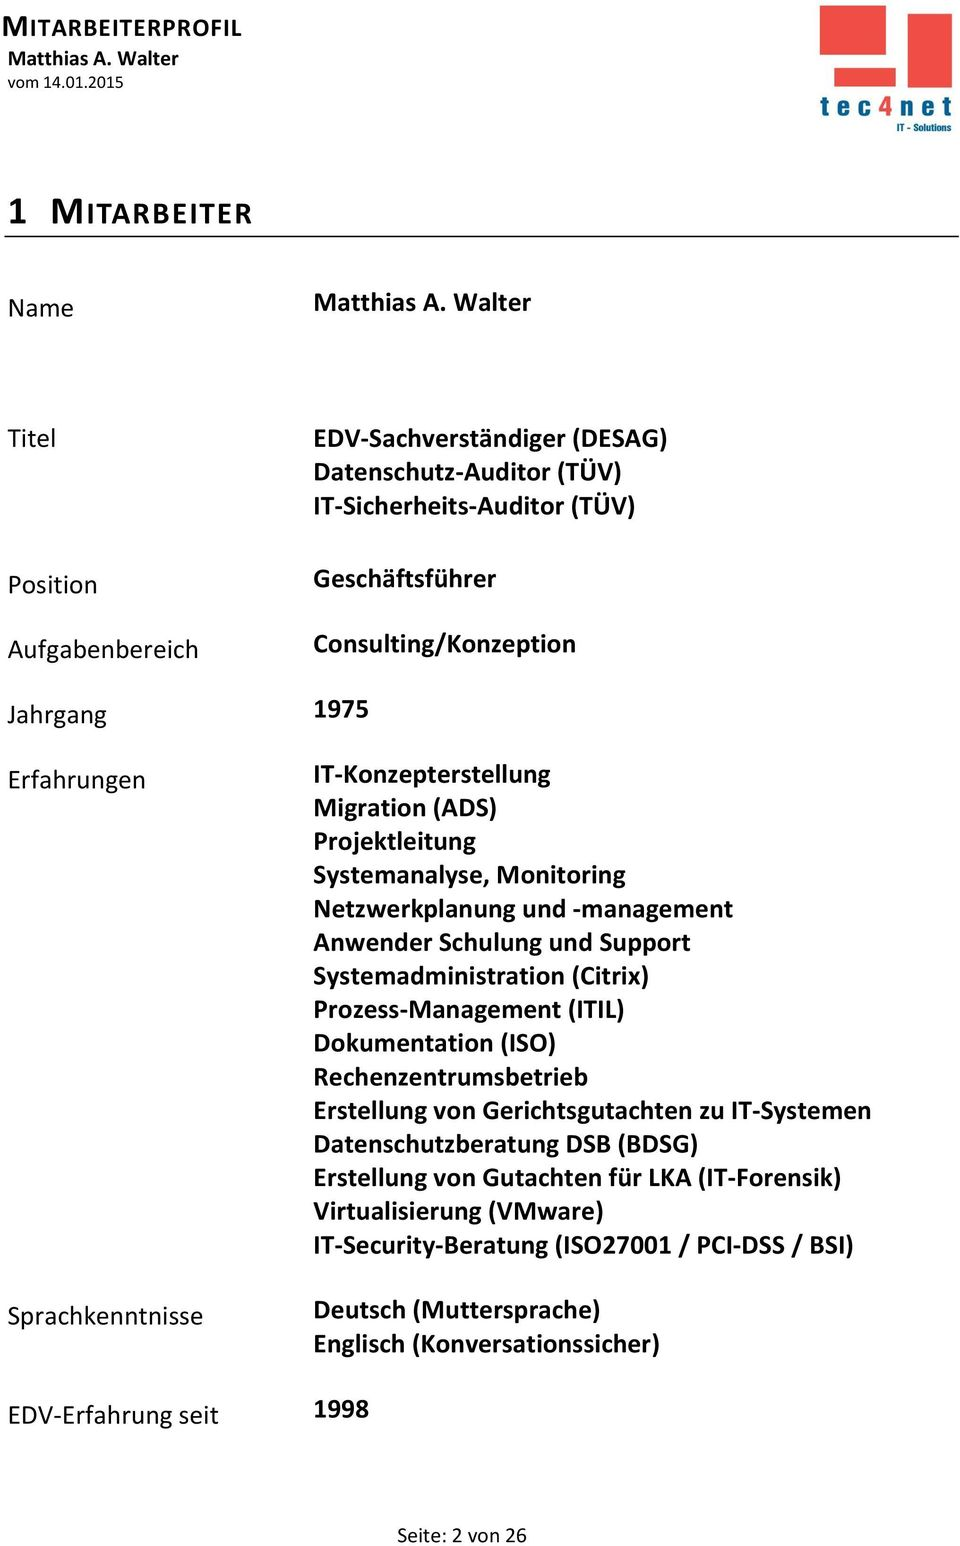 Systemadministration (Citrix) Prozess-Management (ITIL) Dokumentation (ISO) Rechenzentrumsbetrieb Erstellung von Gerichtsgutachten zu IT-Systemen Datenschutzberatung DSB (BDSG)